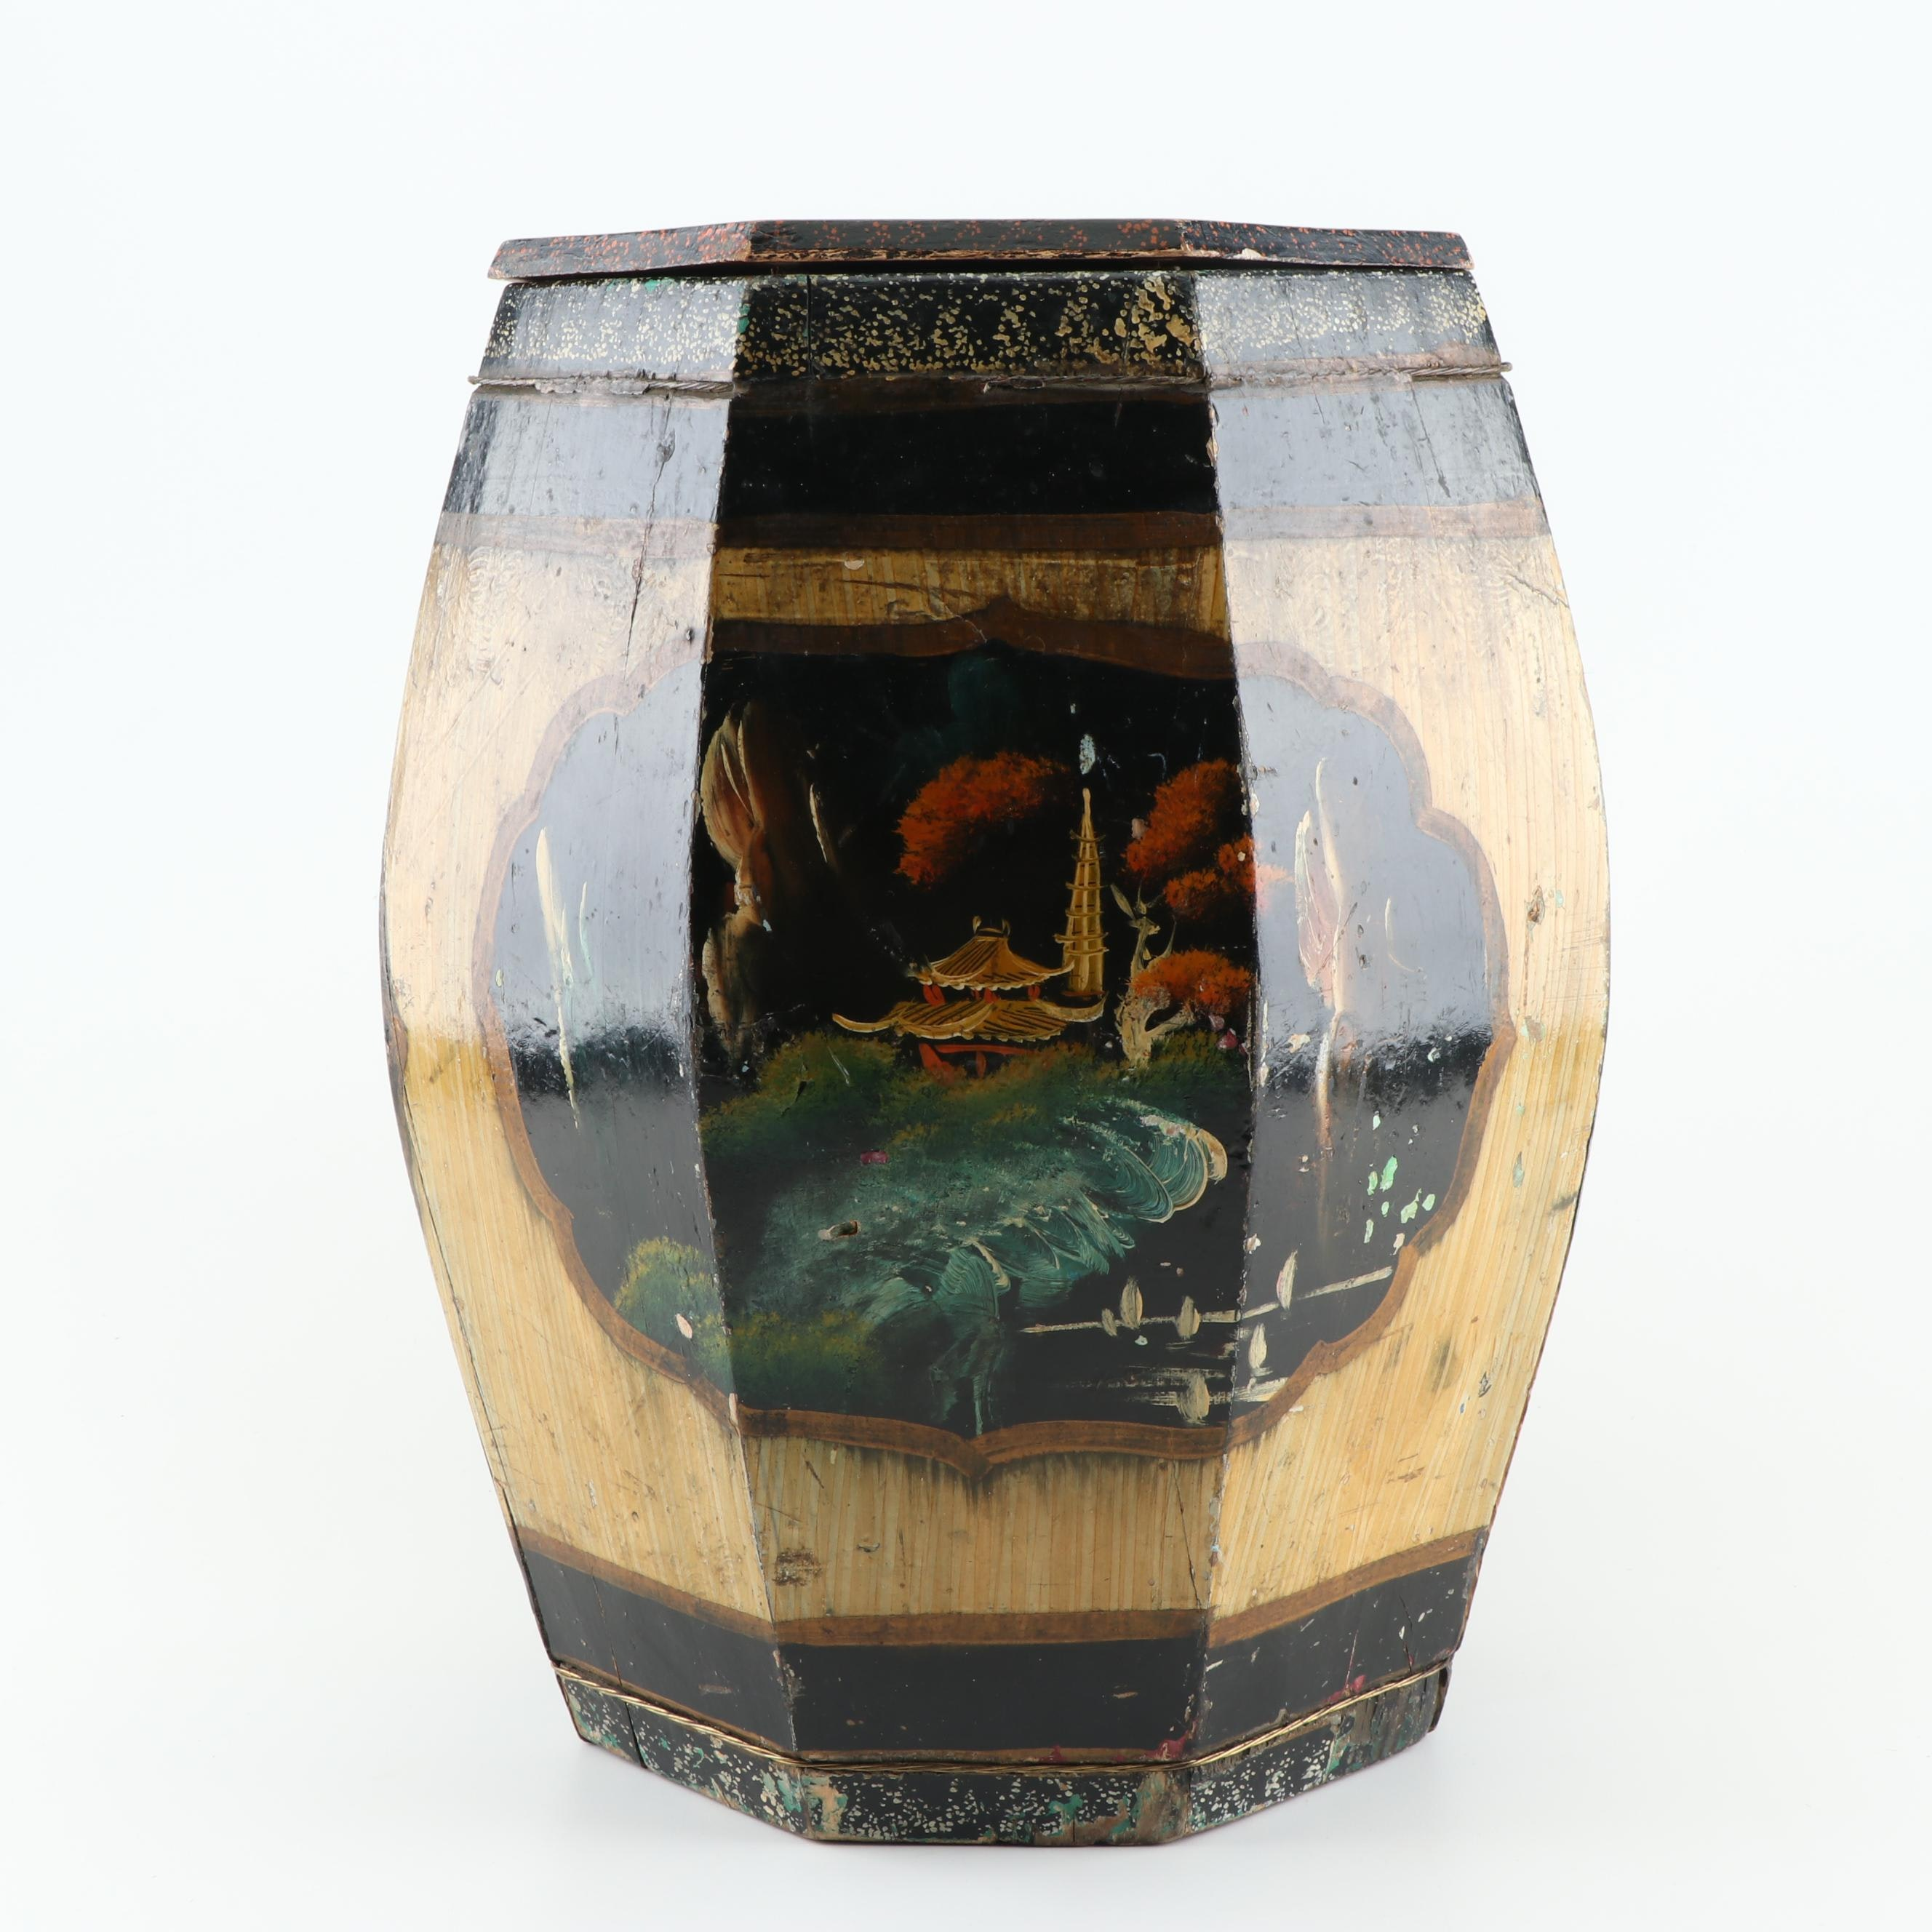 Hand-Painted Chinese Inspired Wooden Garden Stool